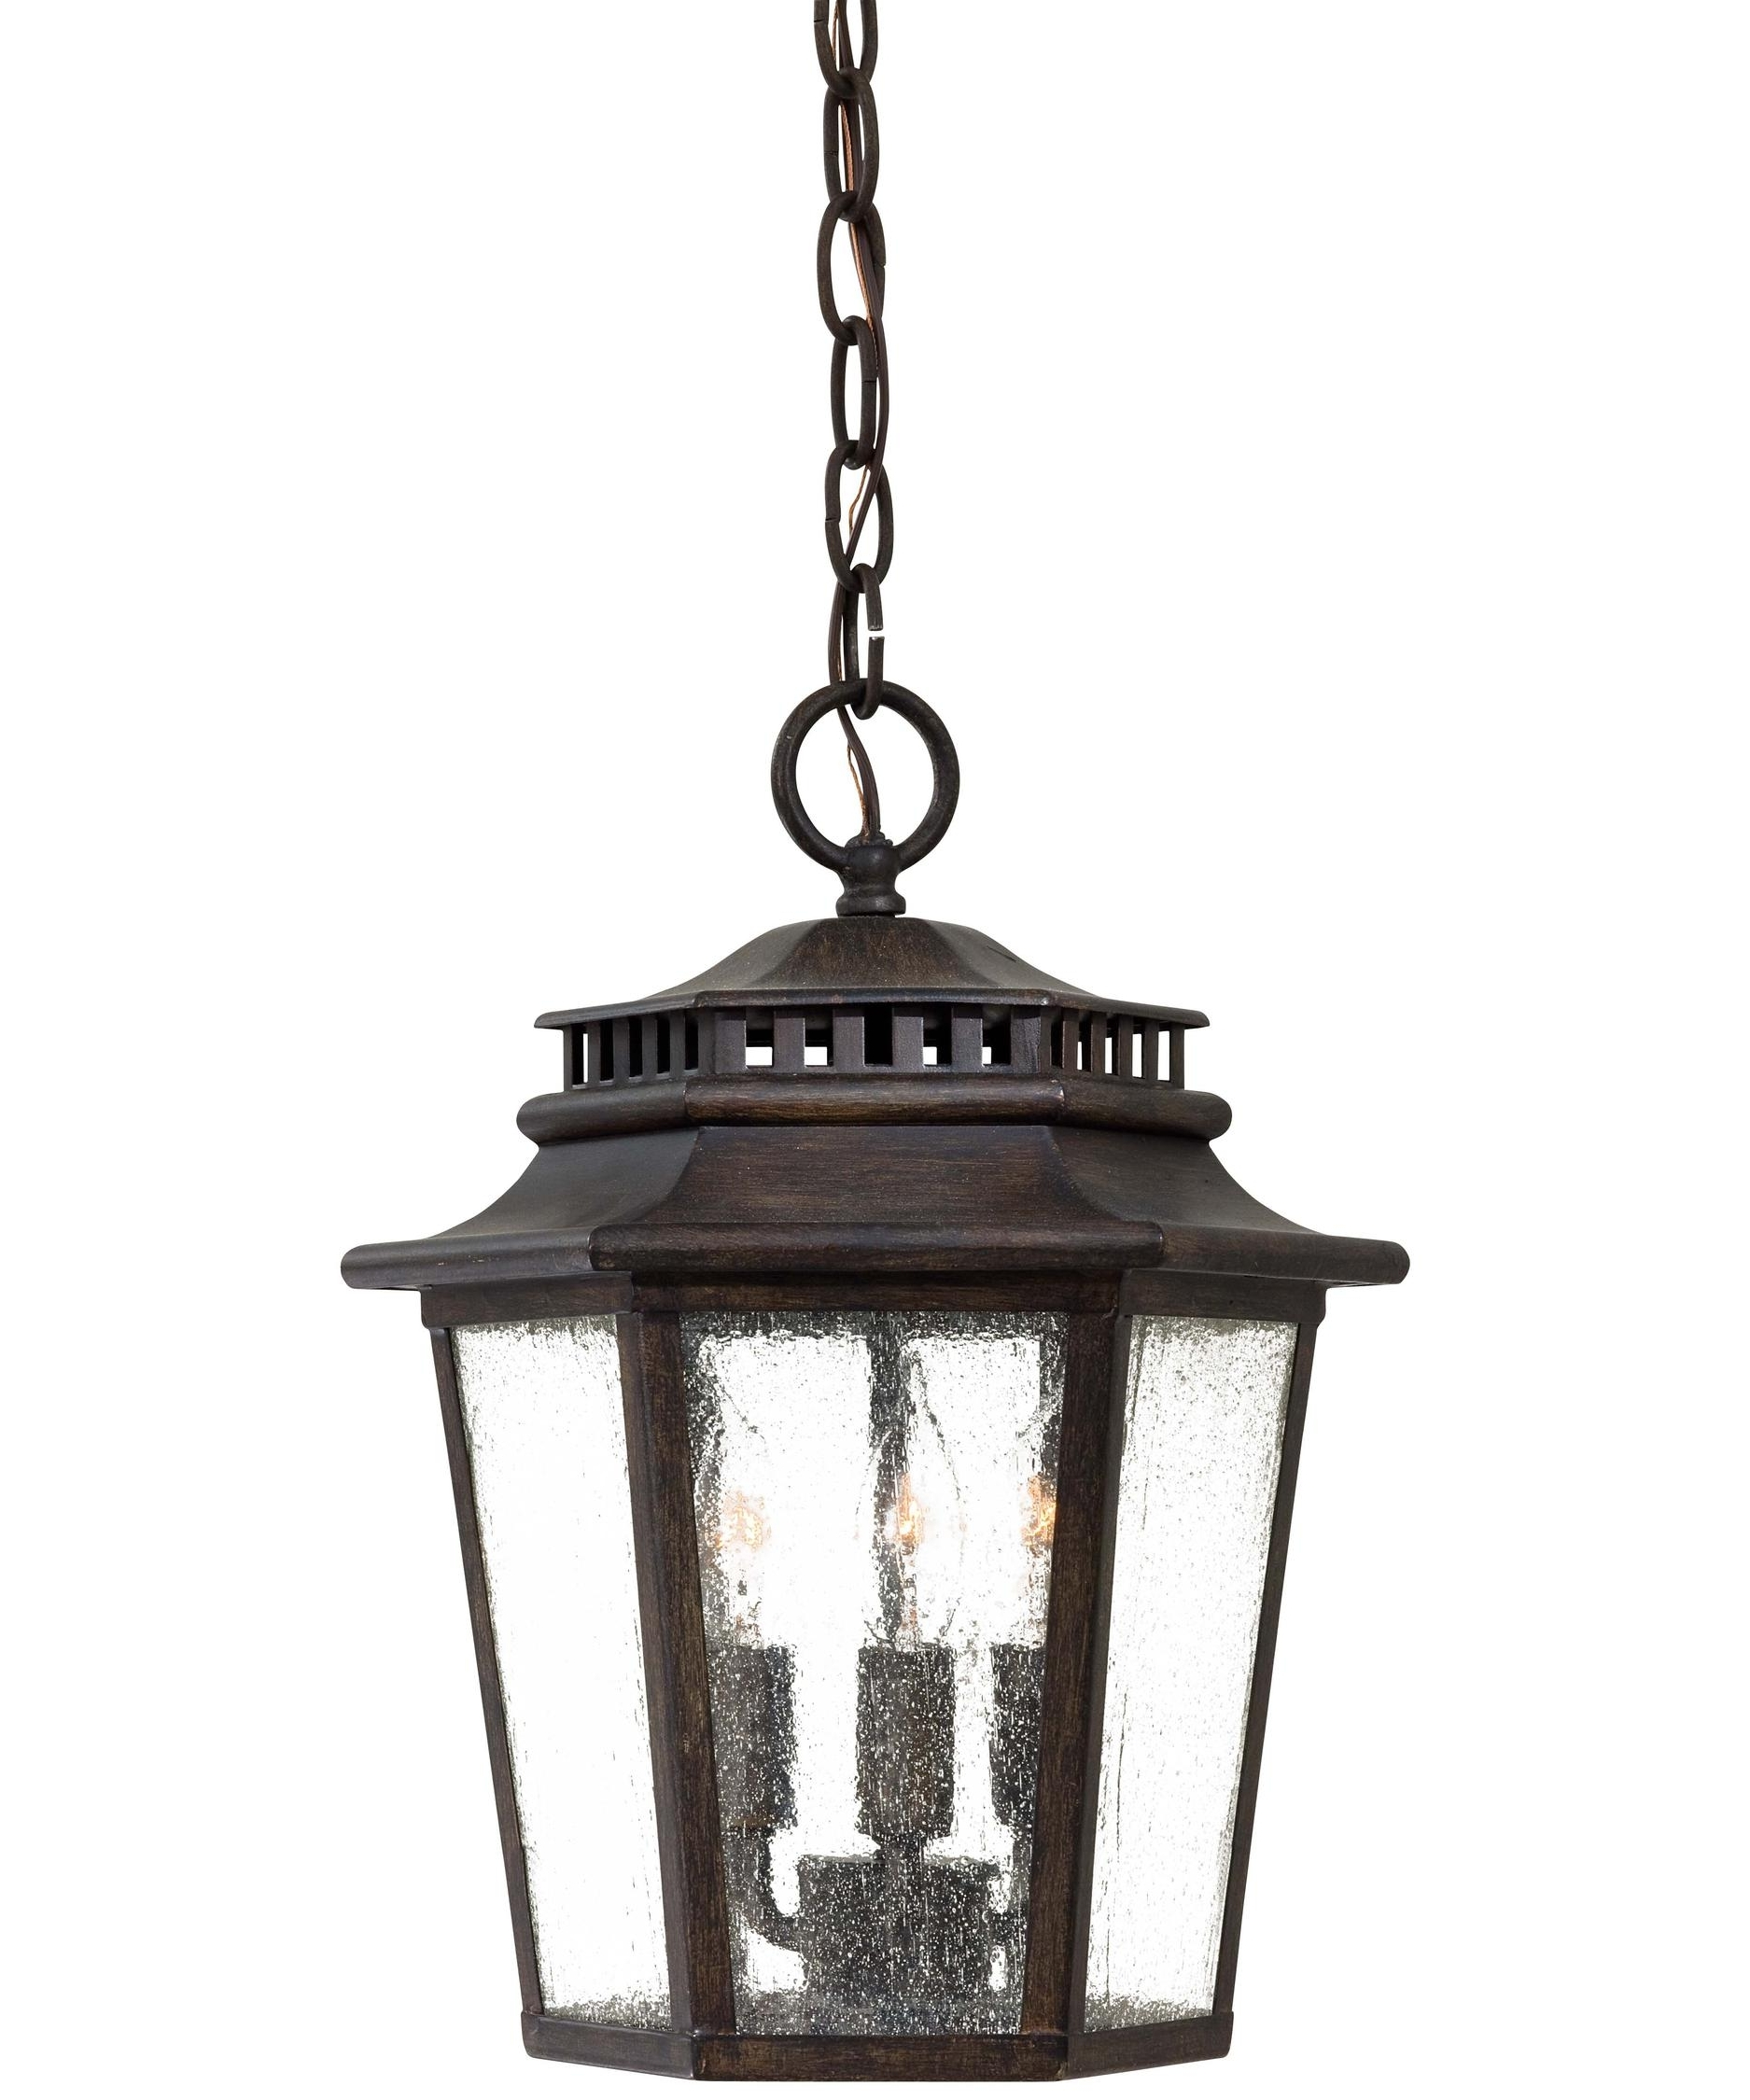 Outdoor Battery Lanterns For Patio For Trendy Fixtures Light : Easy On The Eye Outdoor Pendant Globe Light (View 12 of 20)